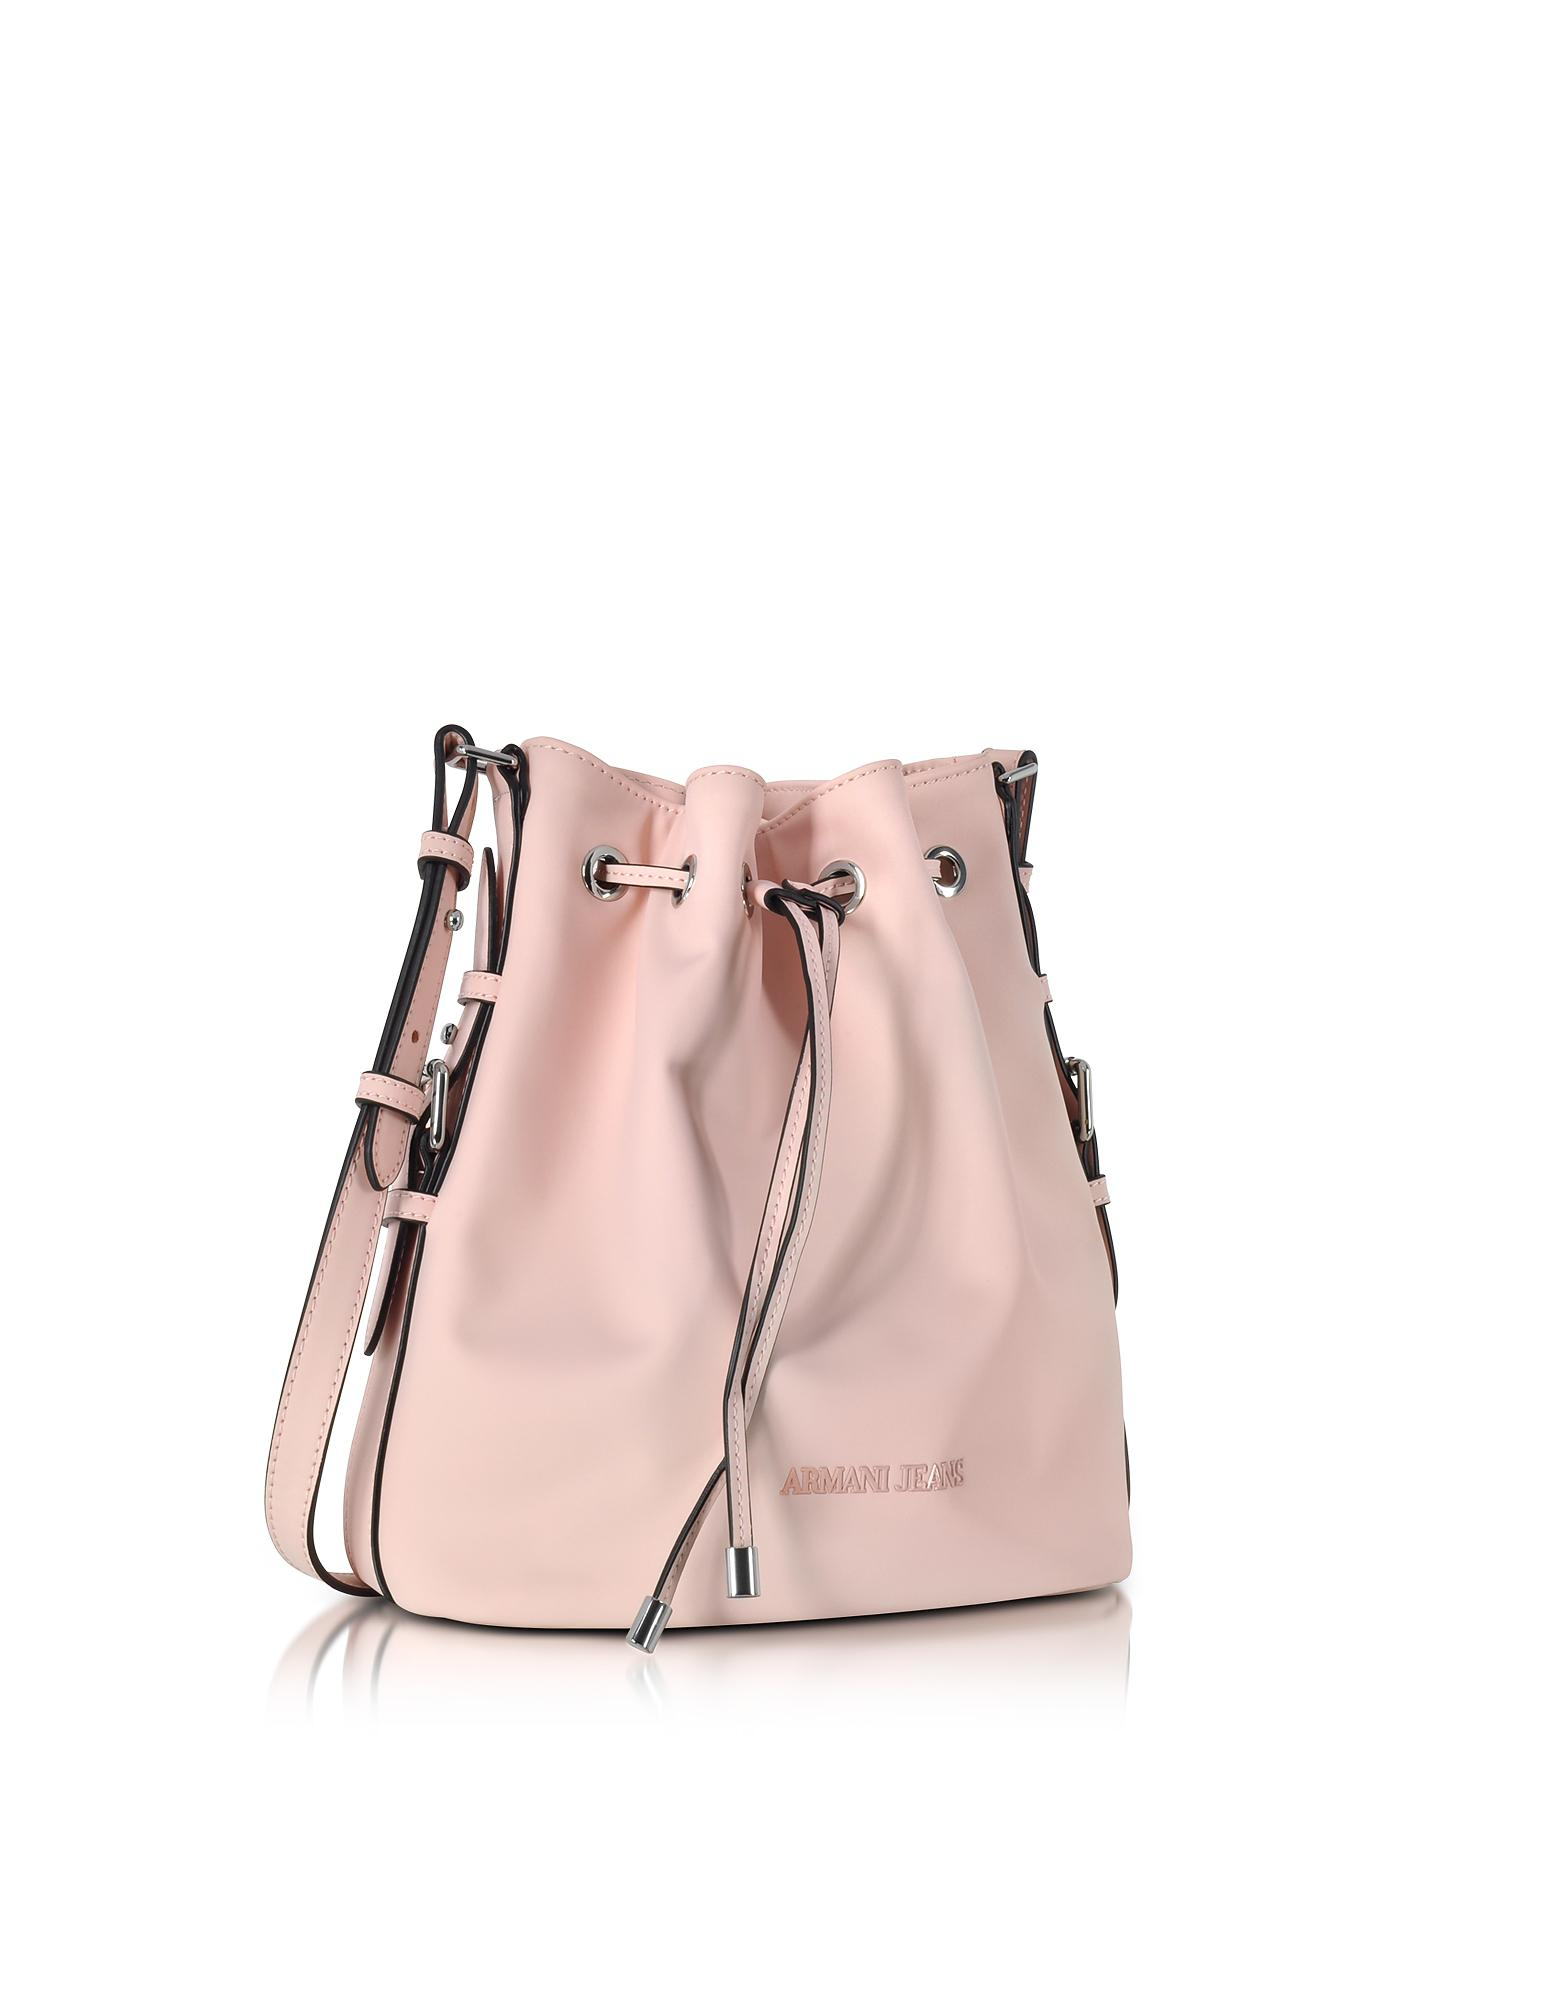 Lyst - Armani Jeans New Light Pink Eco Leather Bucket Bag in Pink 899a3279bf597